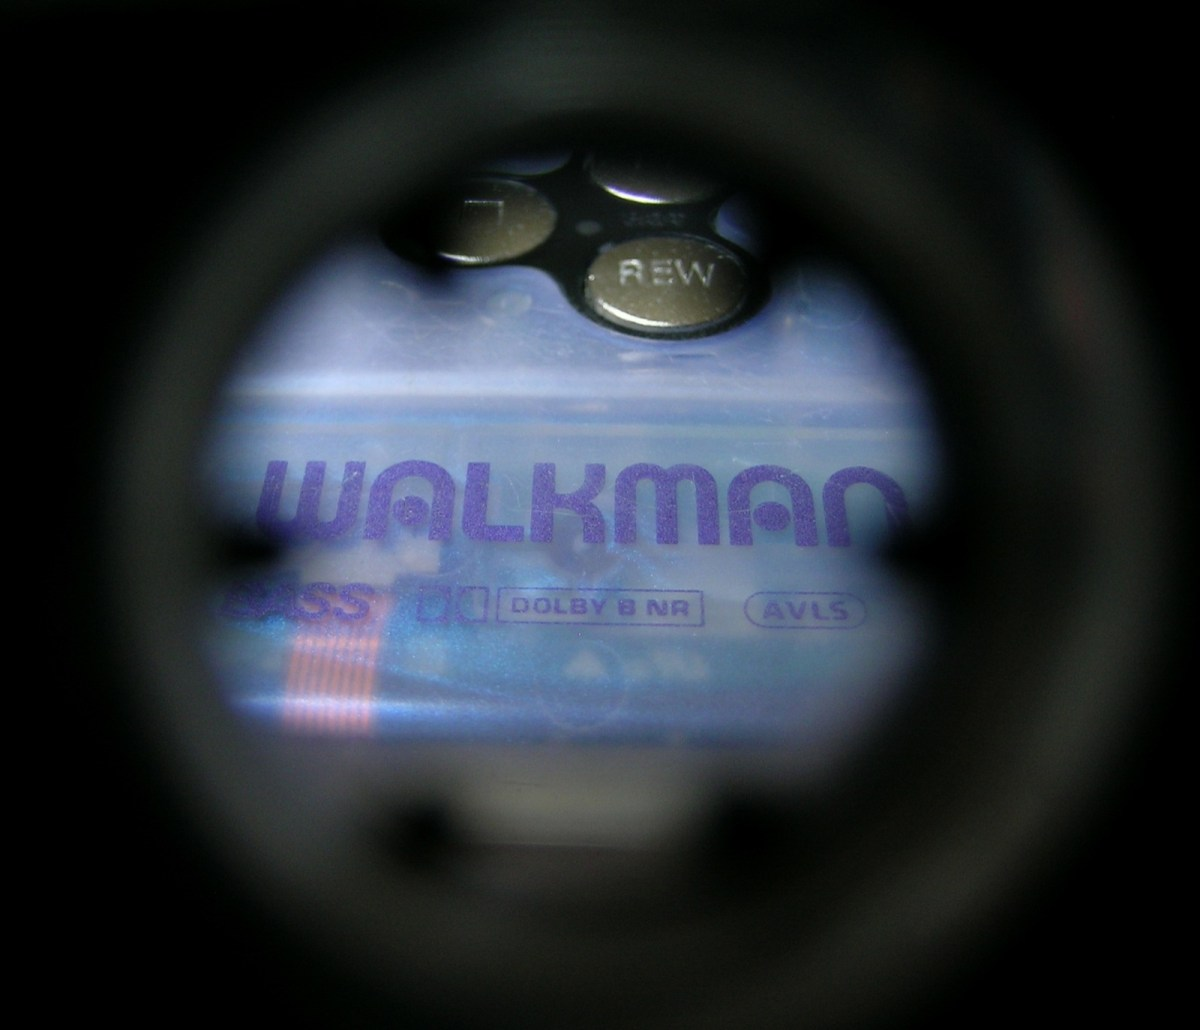 A photograph of a Sony Walkman taken through one of the two spools on the tape.